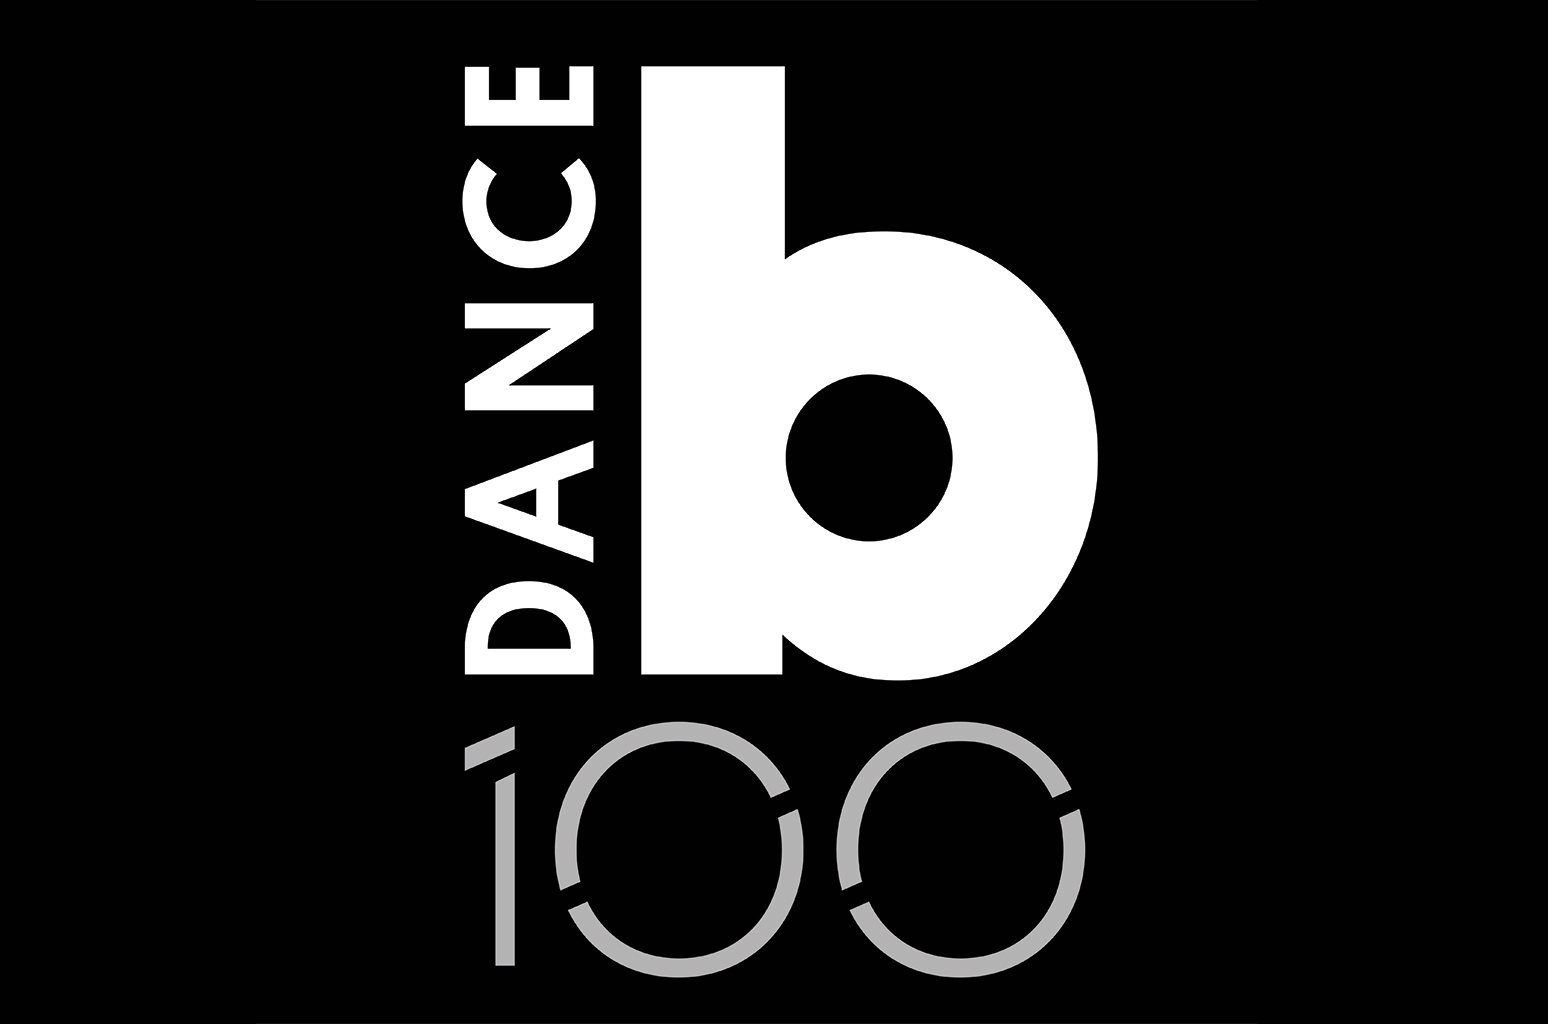 Billboard Dance 100